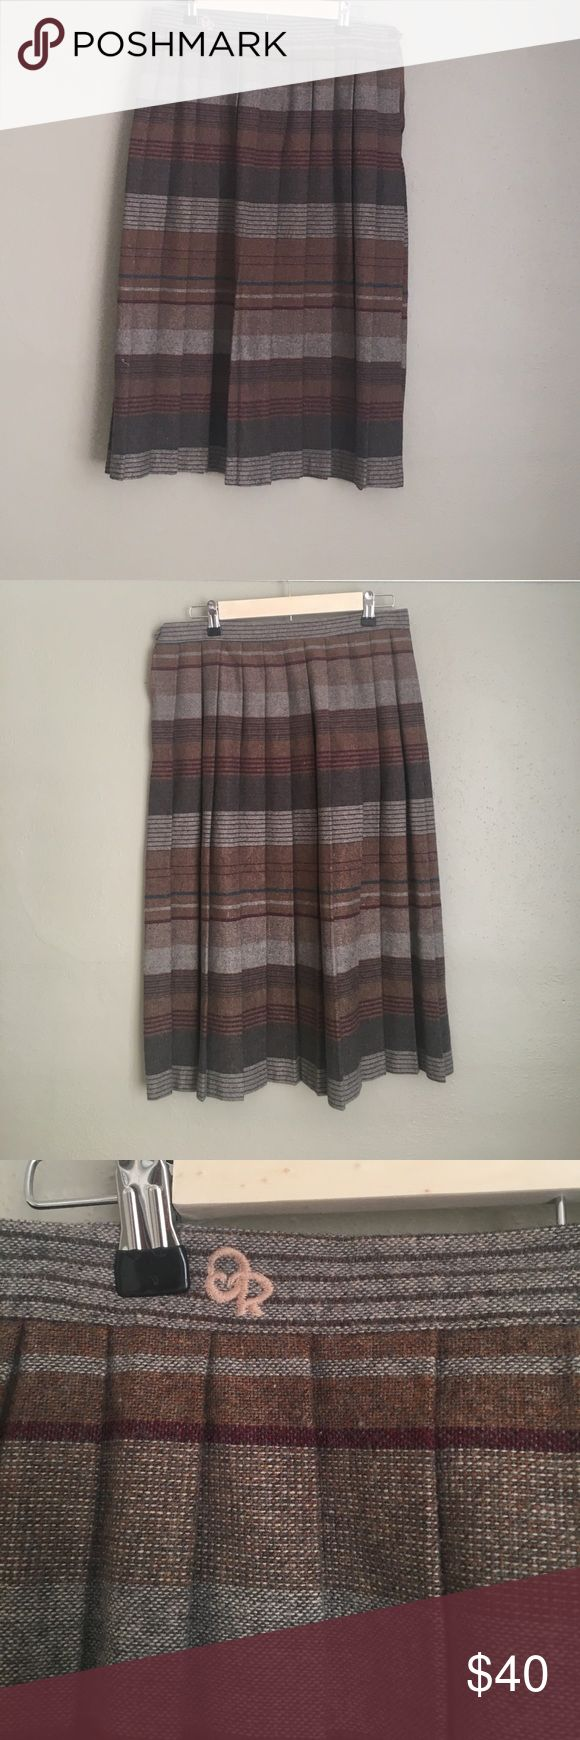 "Vintage Oscar Larenta Pleated Plaid Skirt, Sz 16 Cute vintage Oscar de Larenta Pleated plaid skirt size 16. Knee length with zipper and button close at the hip. Measurements of garment while laid flat:   Waist: 15 1/2"". Length:  29"". Oscar de la Renta Skirts Mini"